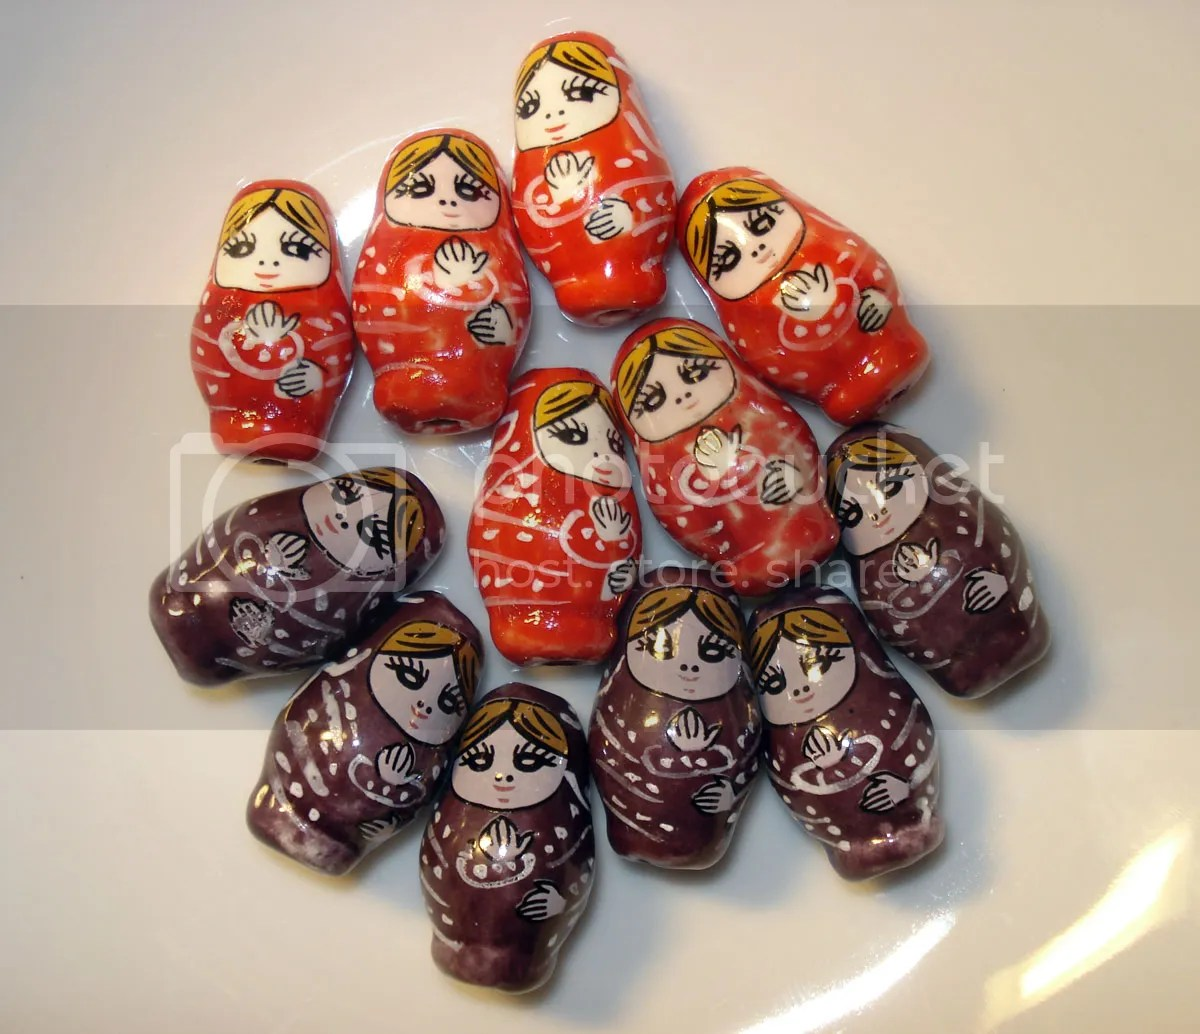 Beadcrafty.com Porcelain Russian Doll Beads